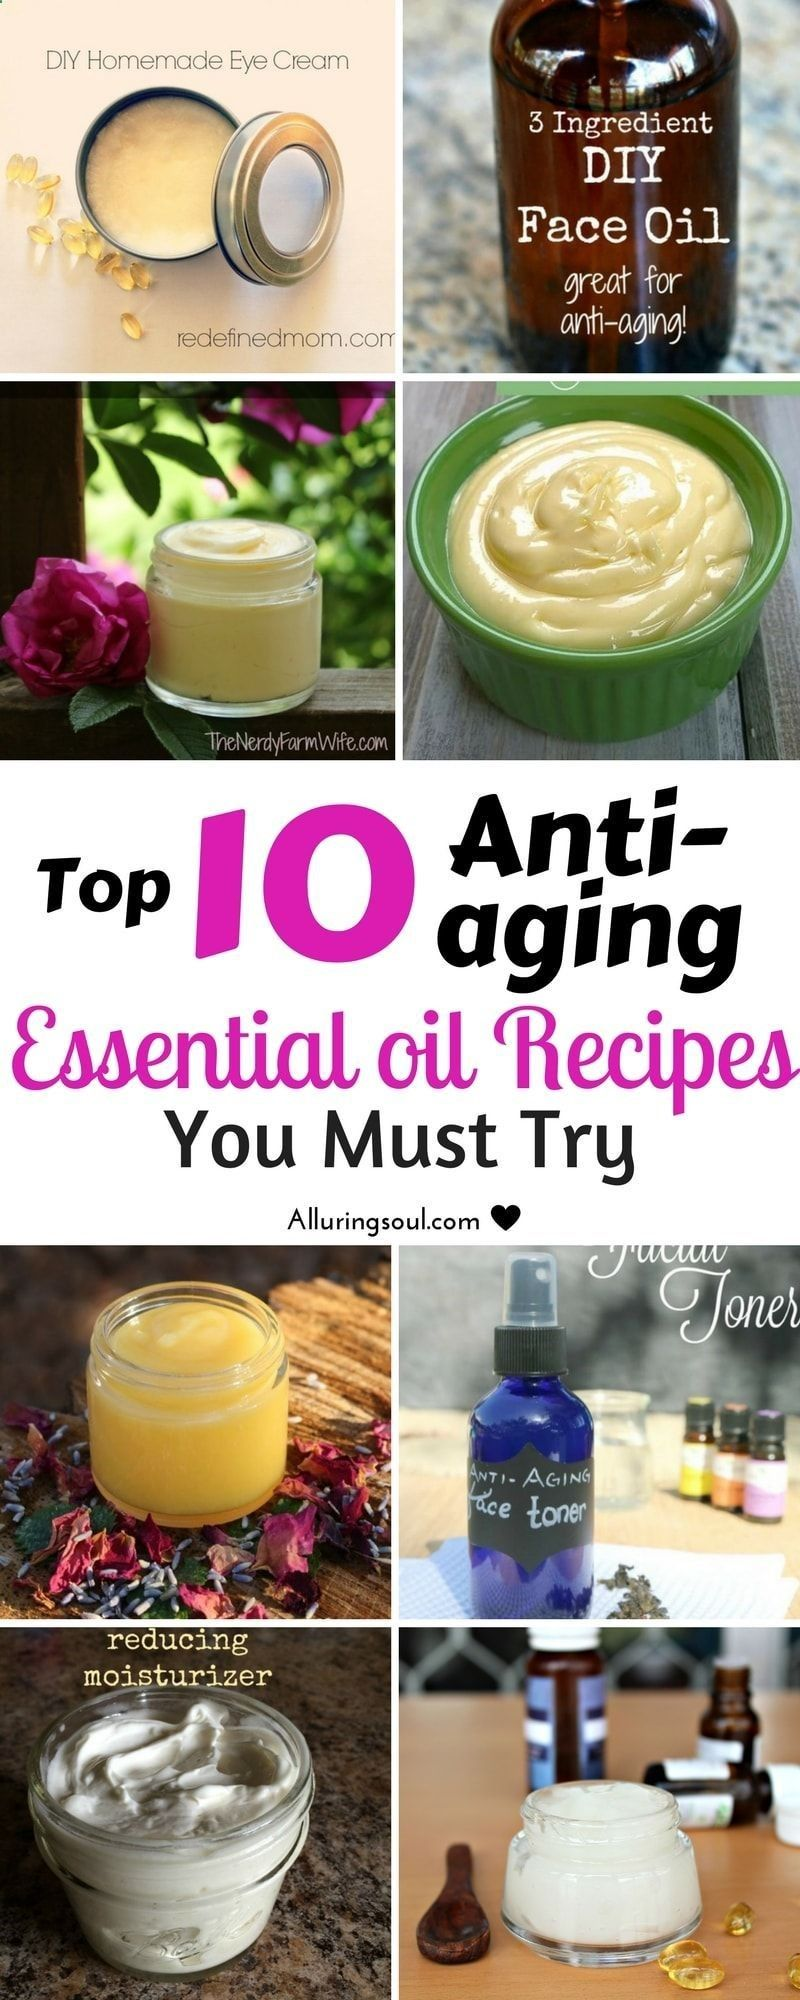 Eliminate Your Acne TipsRemedies  essential oil recipe to get rid